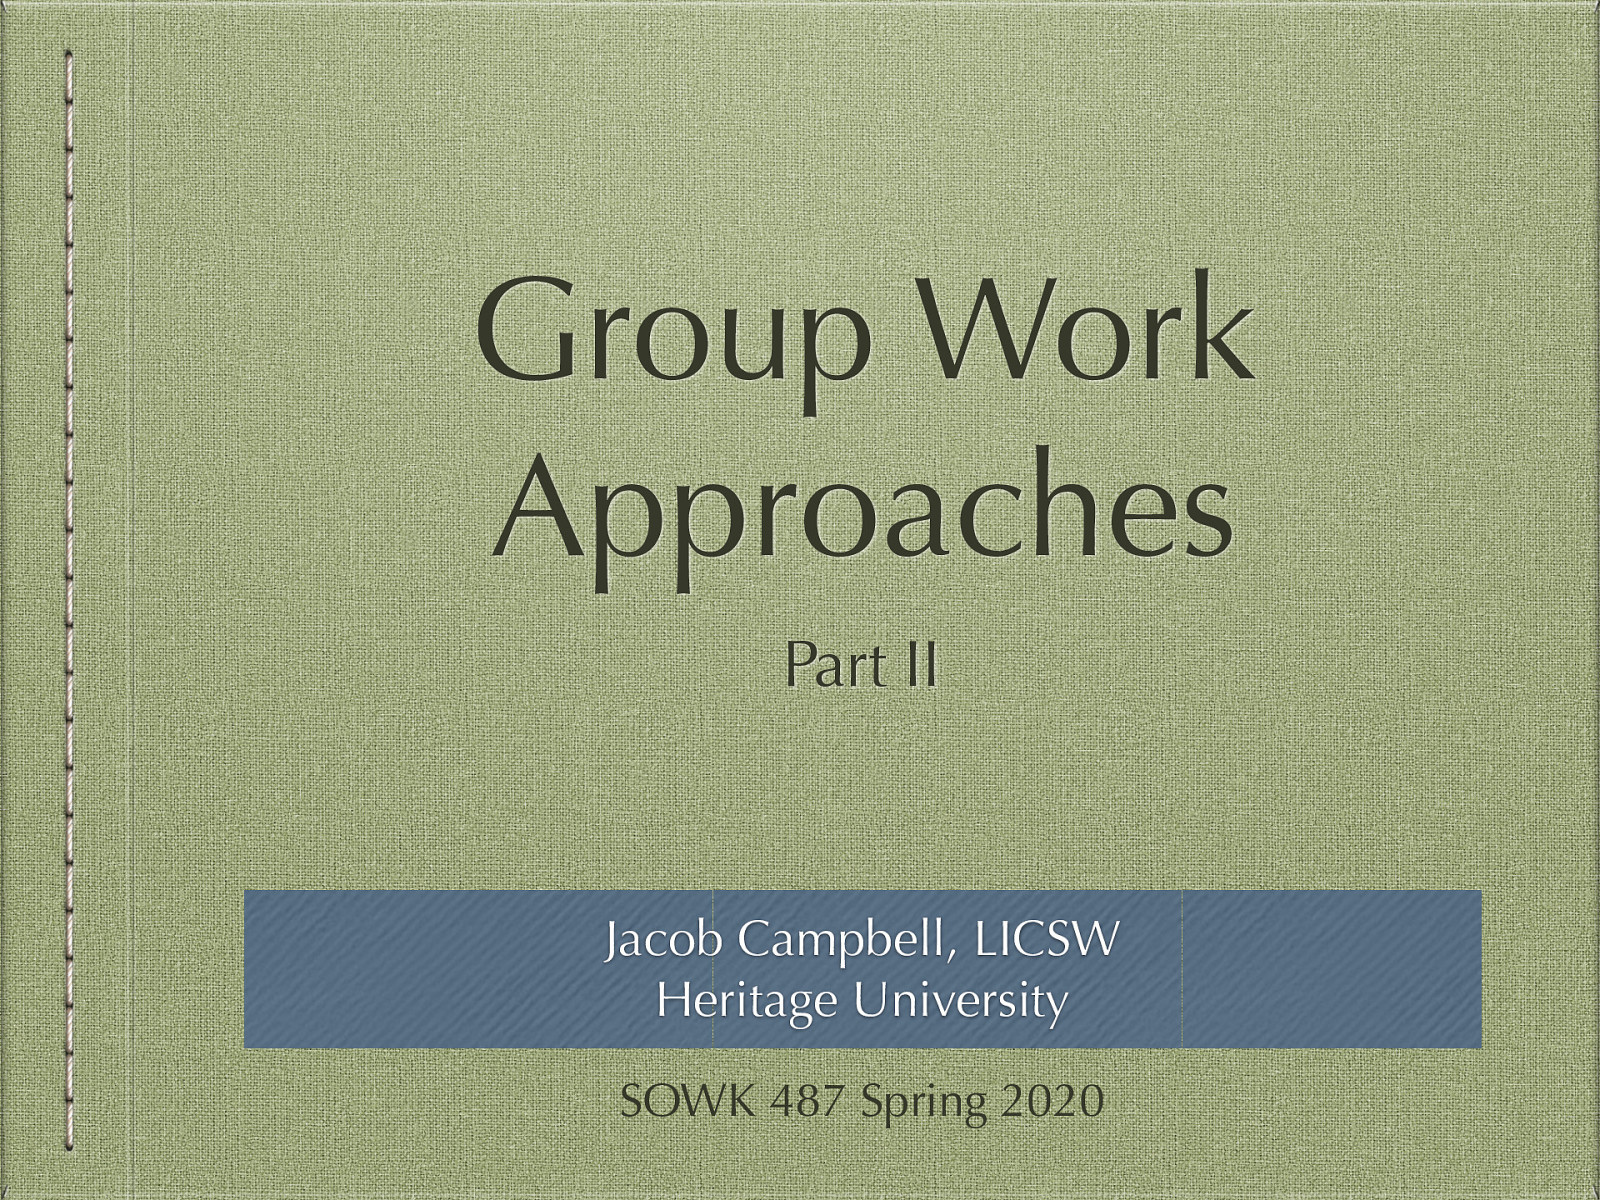 SOWK 487 Spring 2020 Planning: Class 08